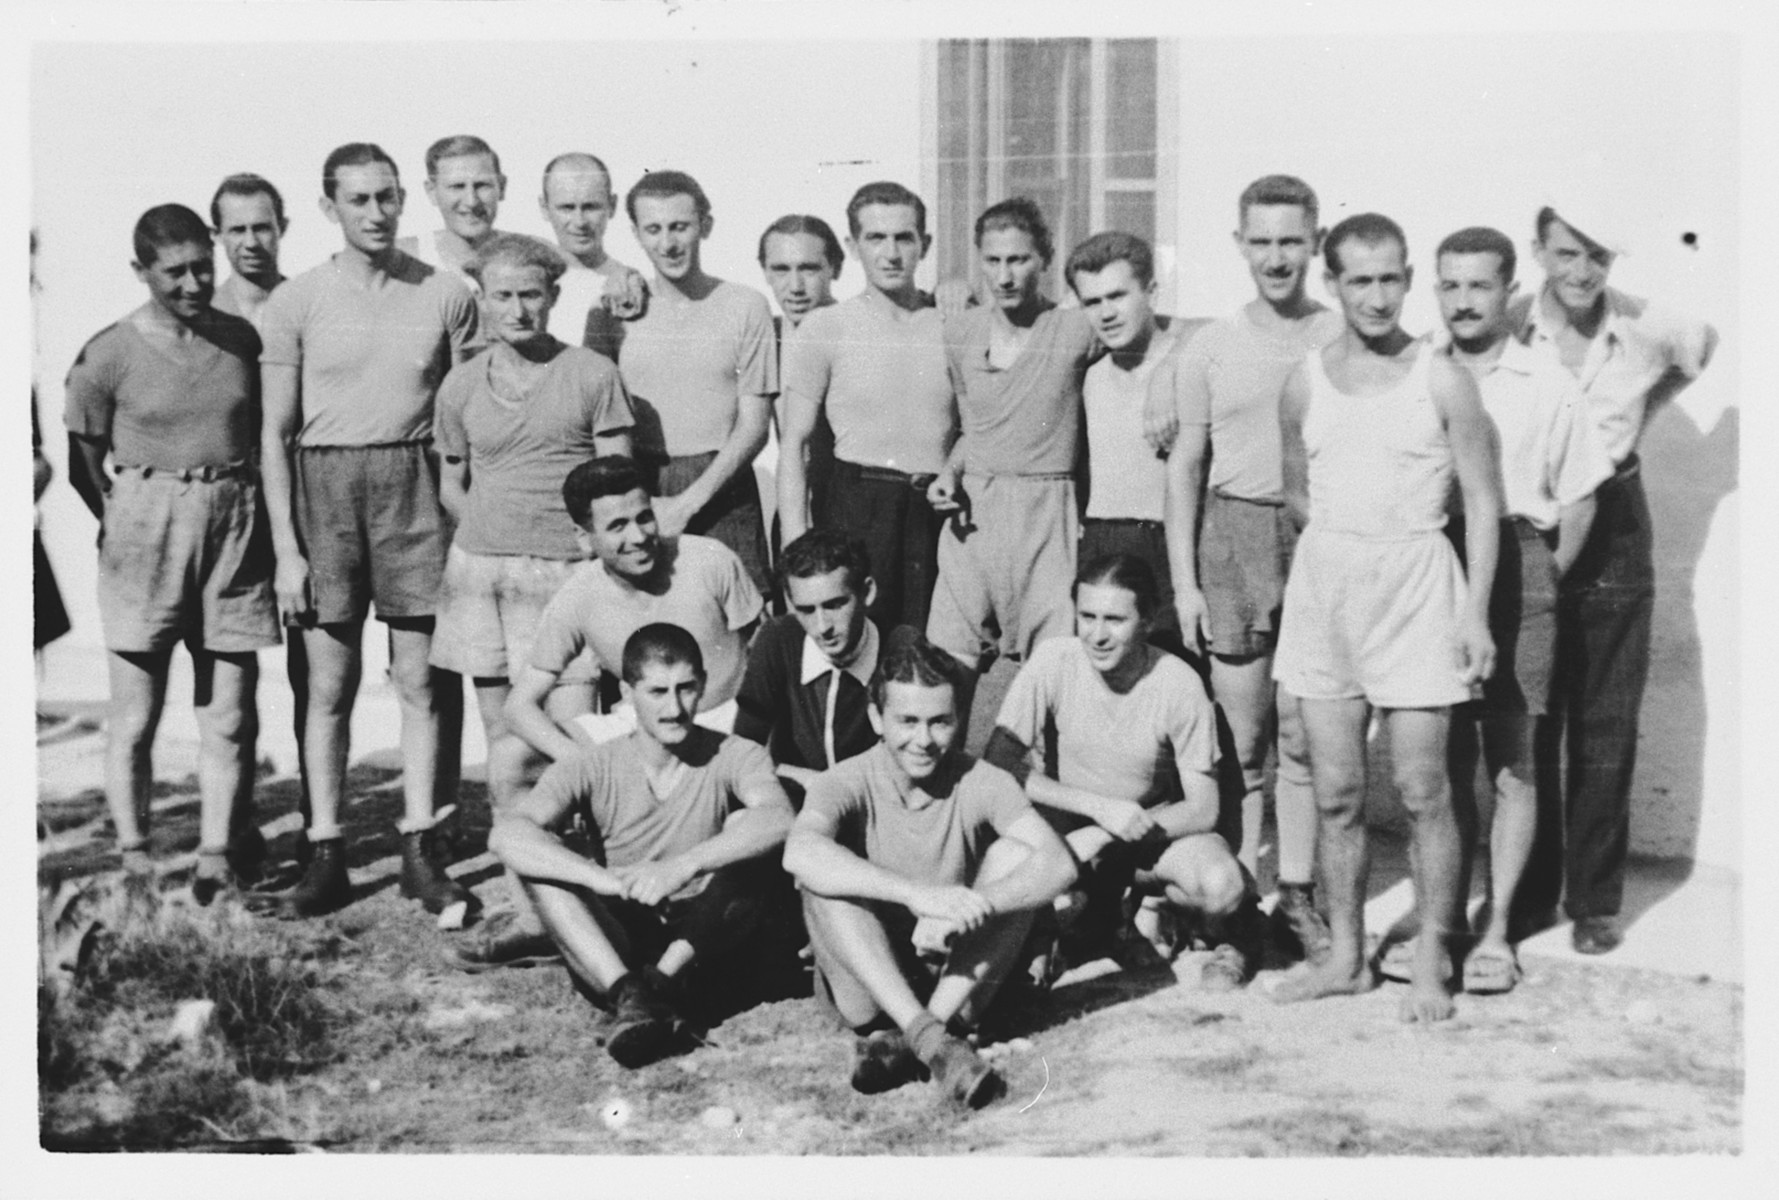 Group portrait of a soccer team in the Ferramonti camp.  This photograph was taken during a visit by Rabbi Pacifici to the internees.